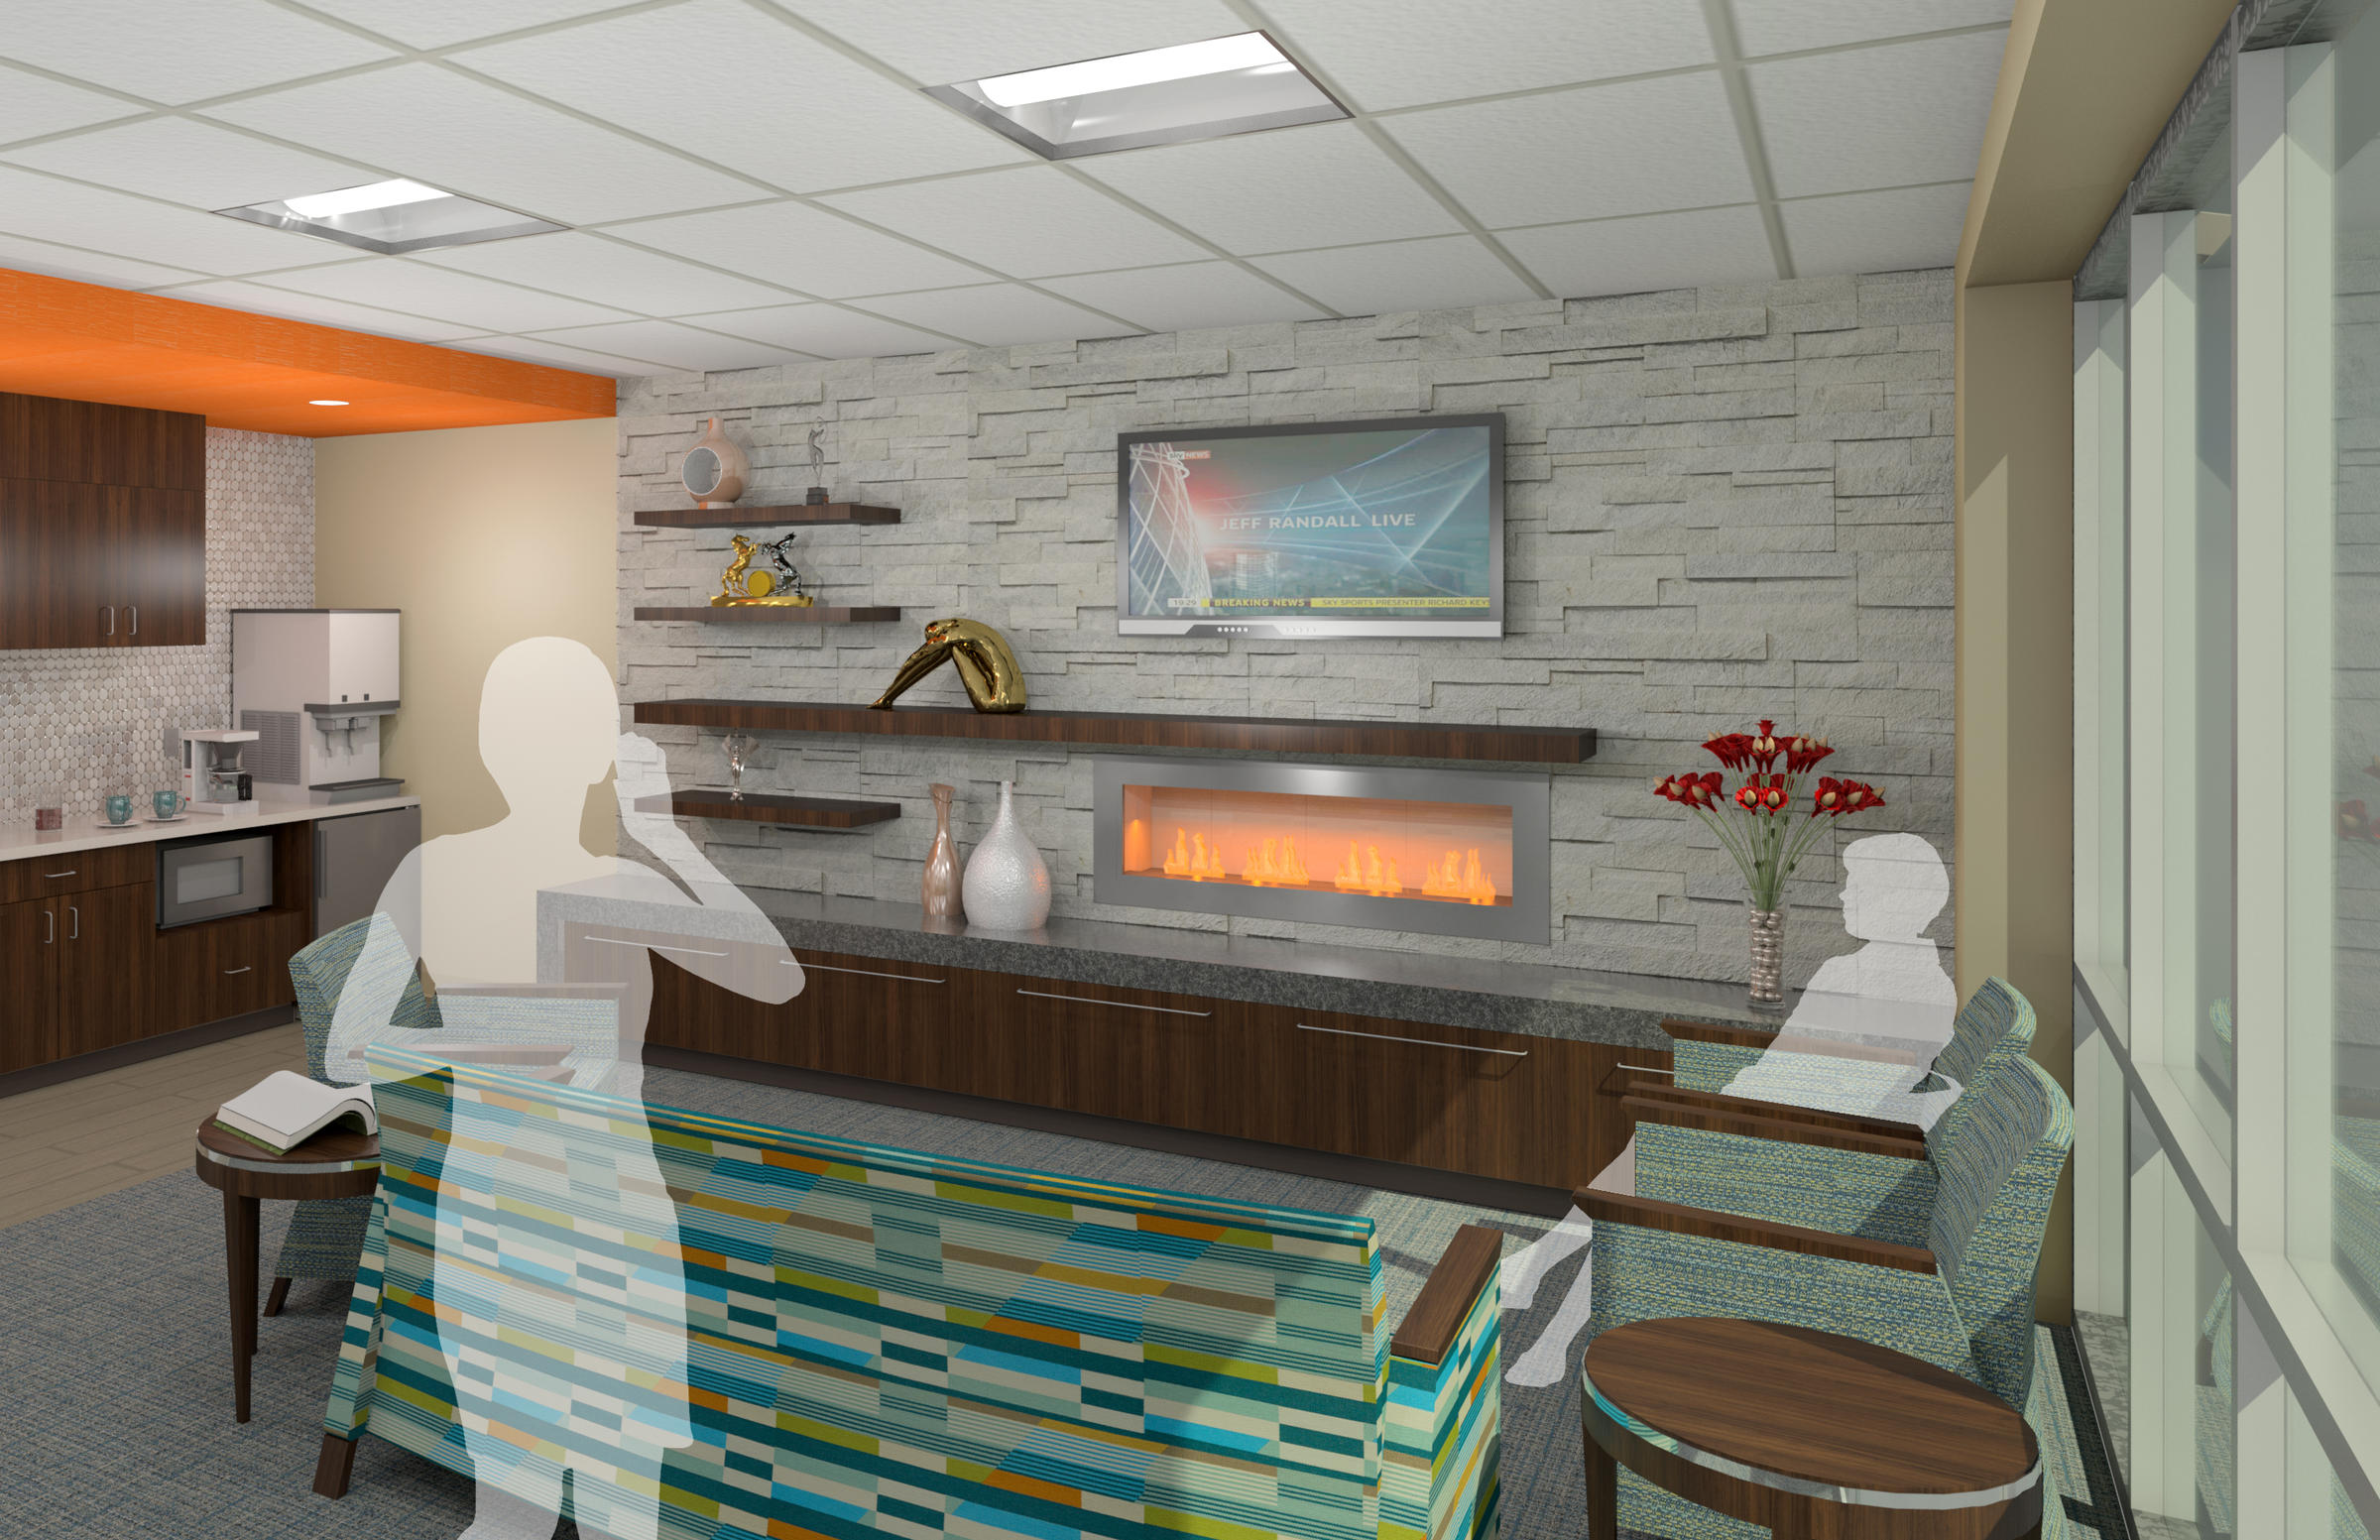 Patient Centered Design At The New Siteman Cancer Center In Florissant Will  Include A Family Lounge With A Fireplace.